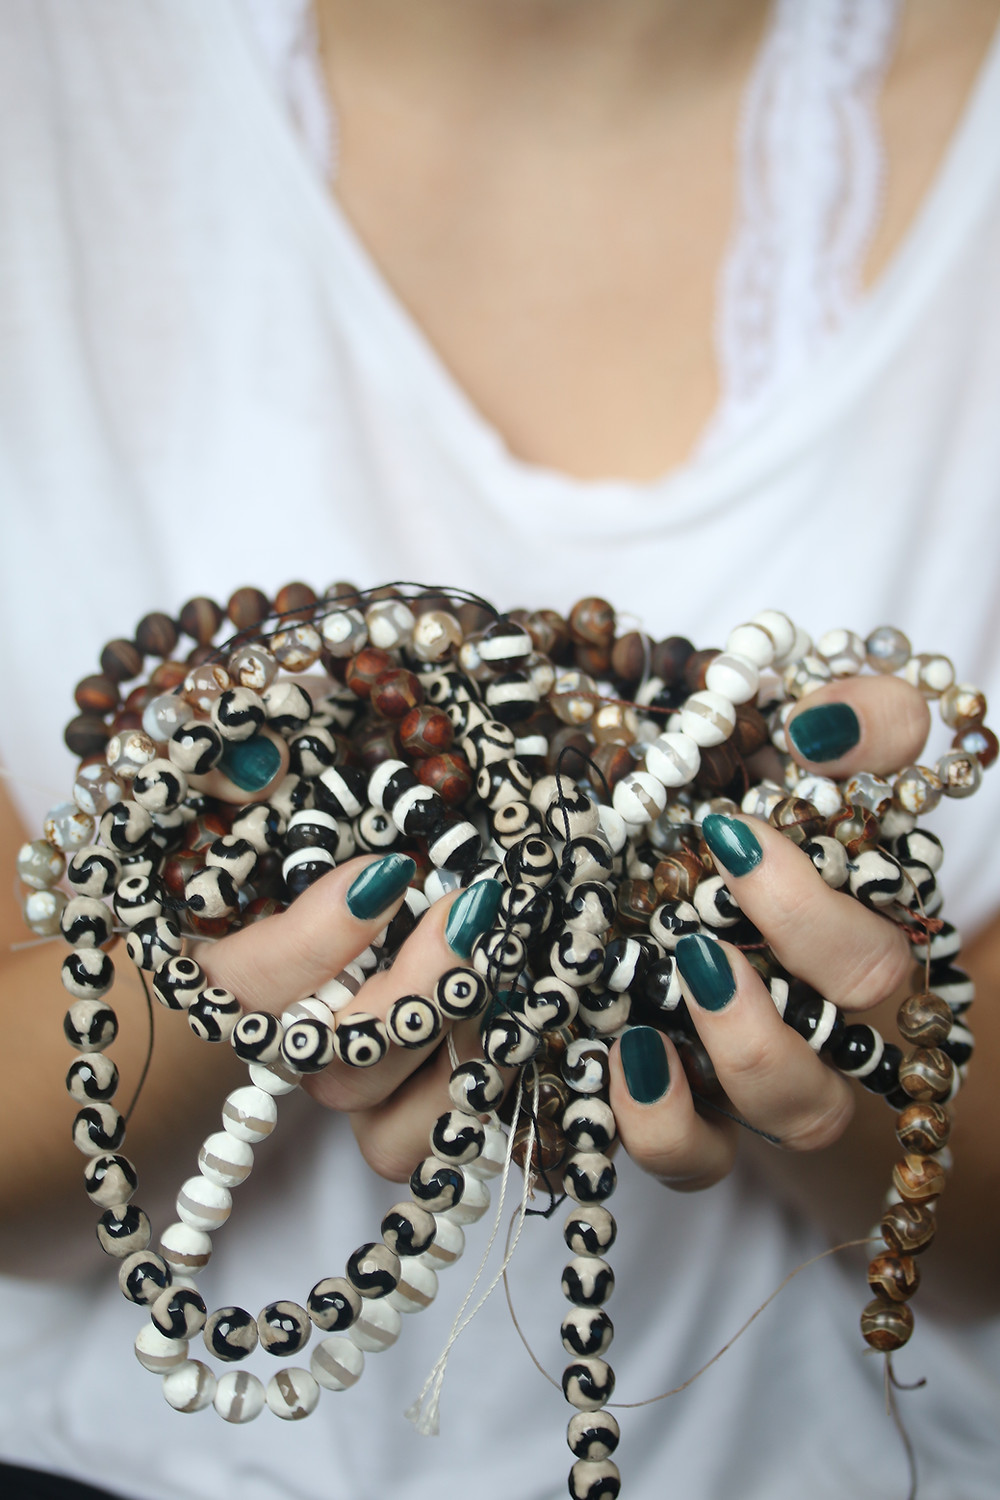 Finally they arrived! Order was placed in September so this is how reliable the shipping from far East is! Beautiful rustic stone beads in nature tones and tribal patterns.